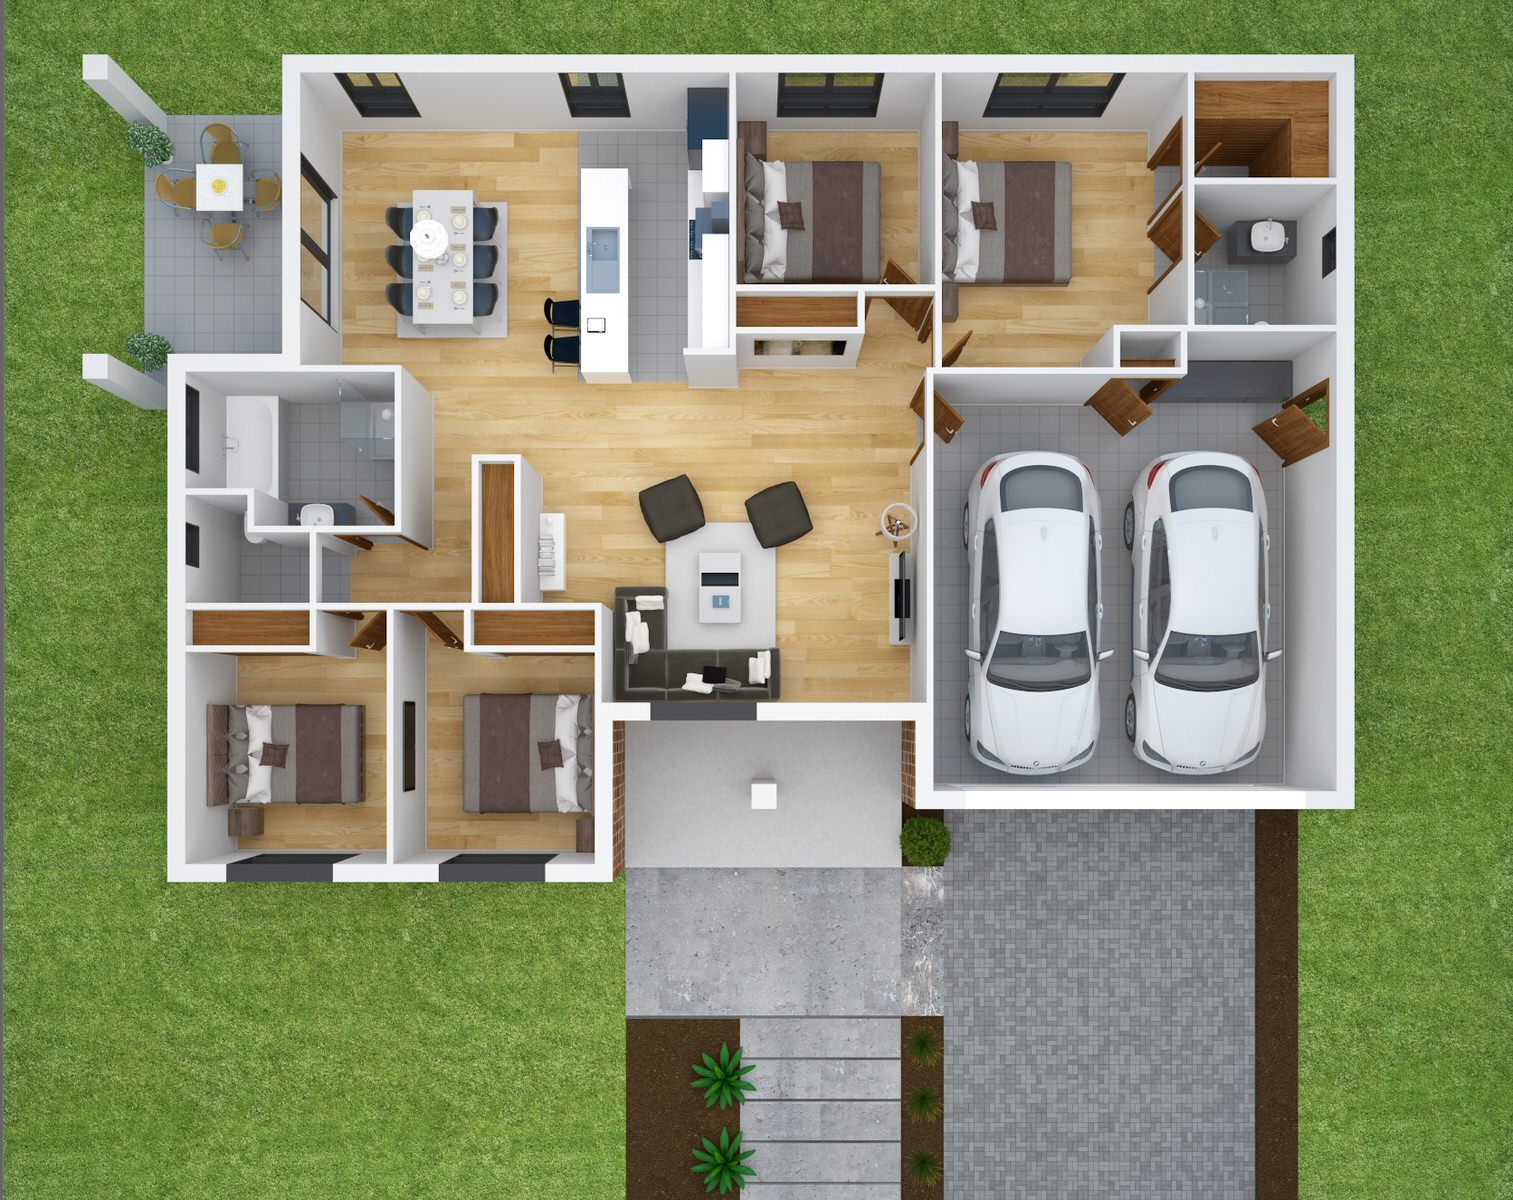 Bramwell Homes' Rosella floorplan